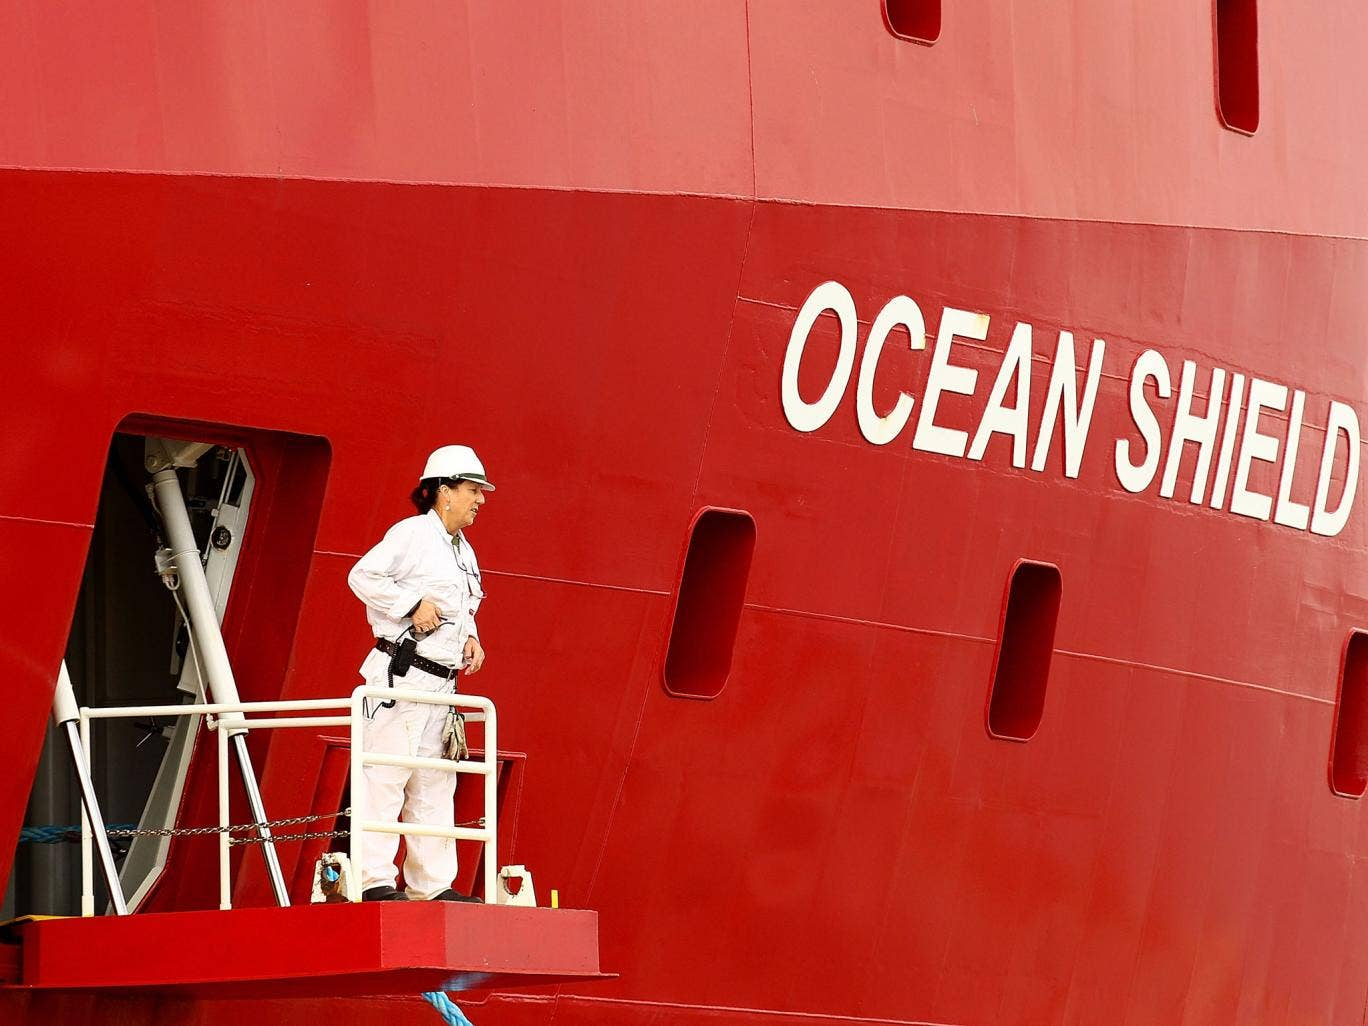 A crew member prepares for departure prior to ADV Ocean Shield slipping from the wharf at HMAS Stirling on May 10, 2014 in Rockingham, Australia. The Australian Defence Vessel Ocean Shield is departing for the MH370 search area today after resupplying at